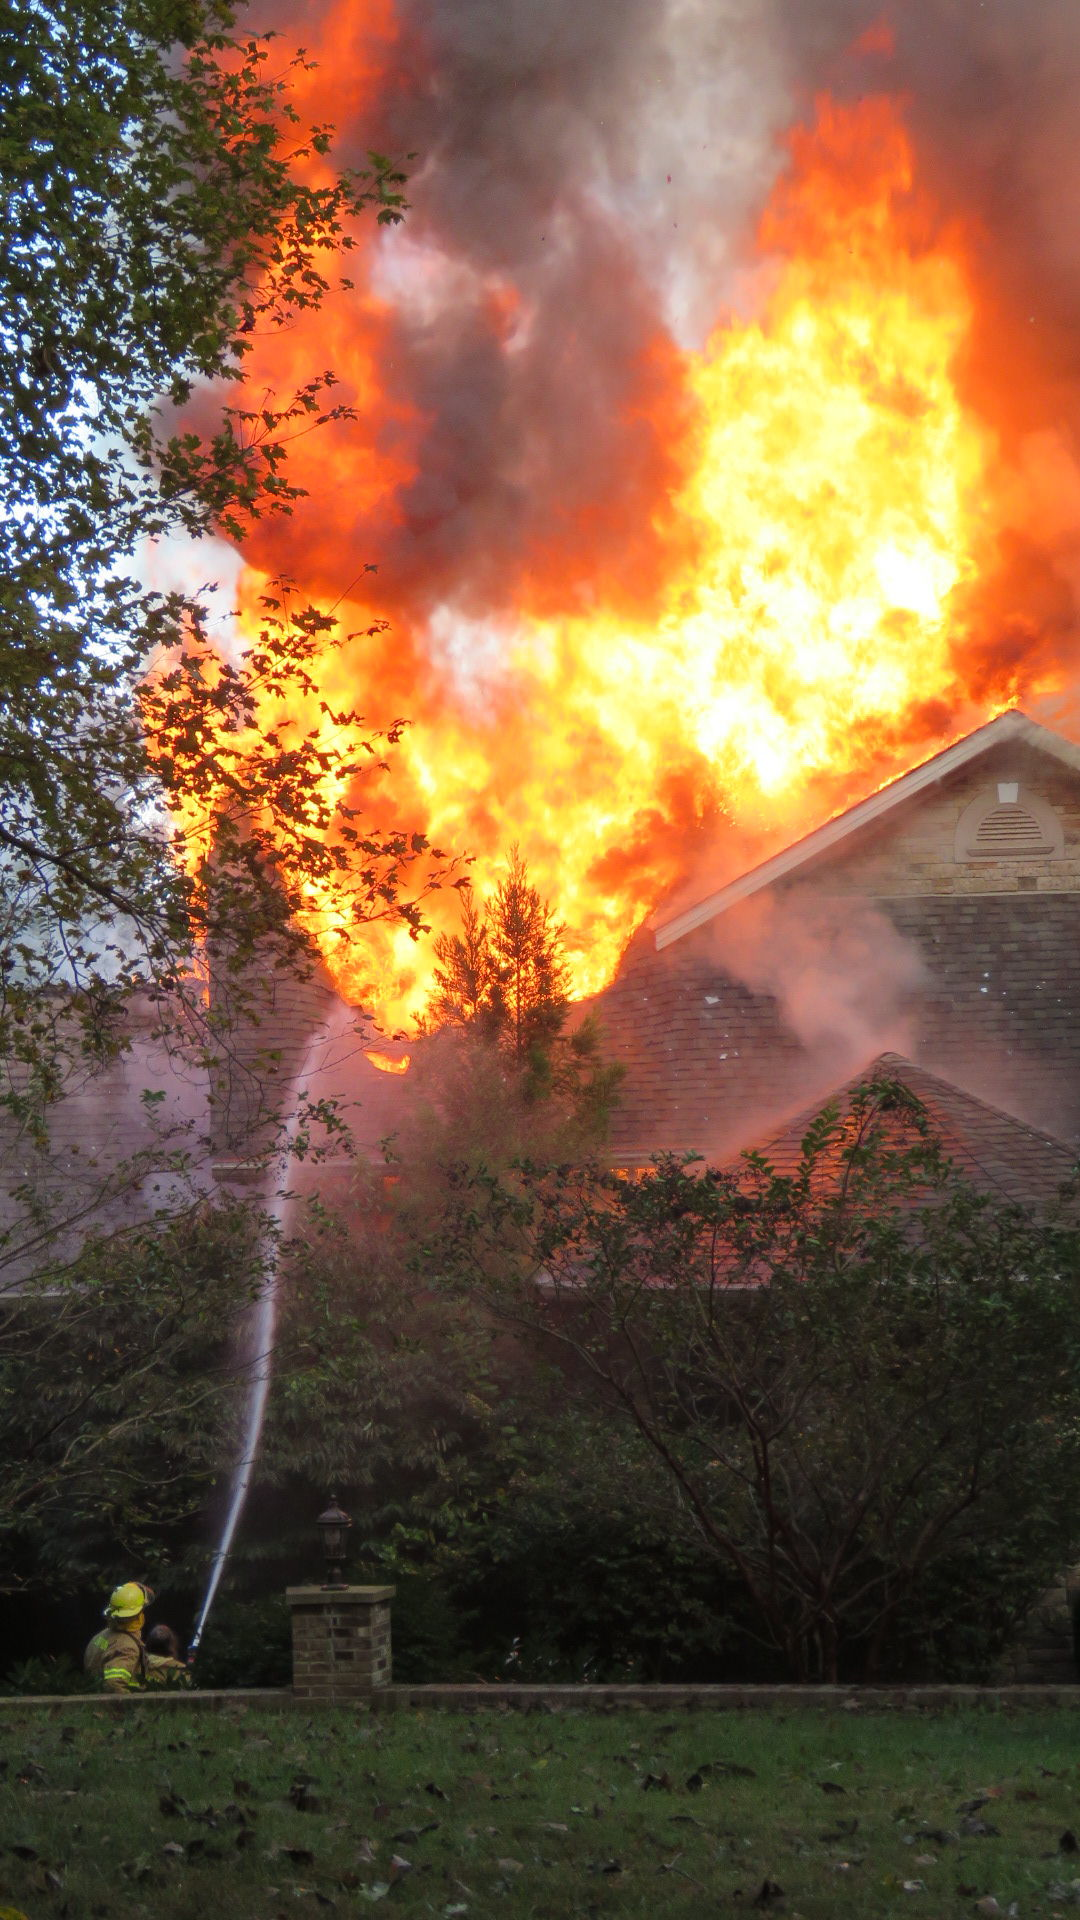 Firefighters work to contain a fire in Trigg County | Photo